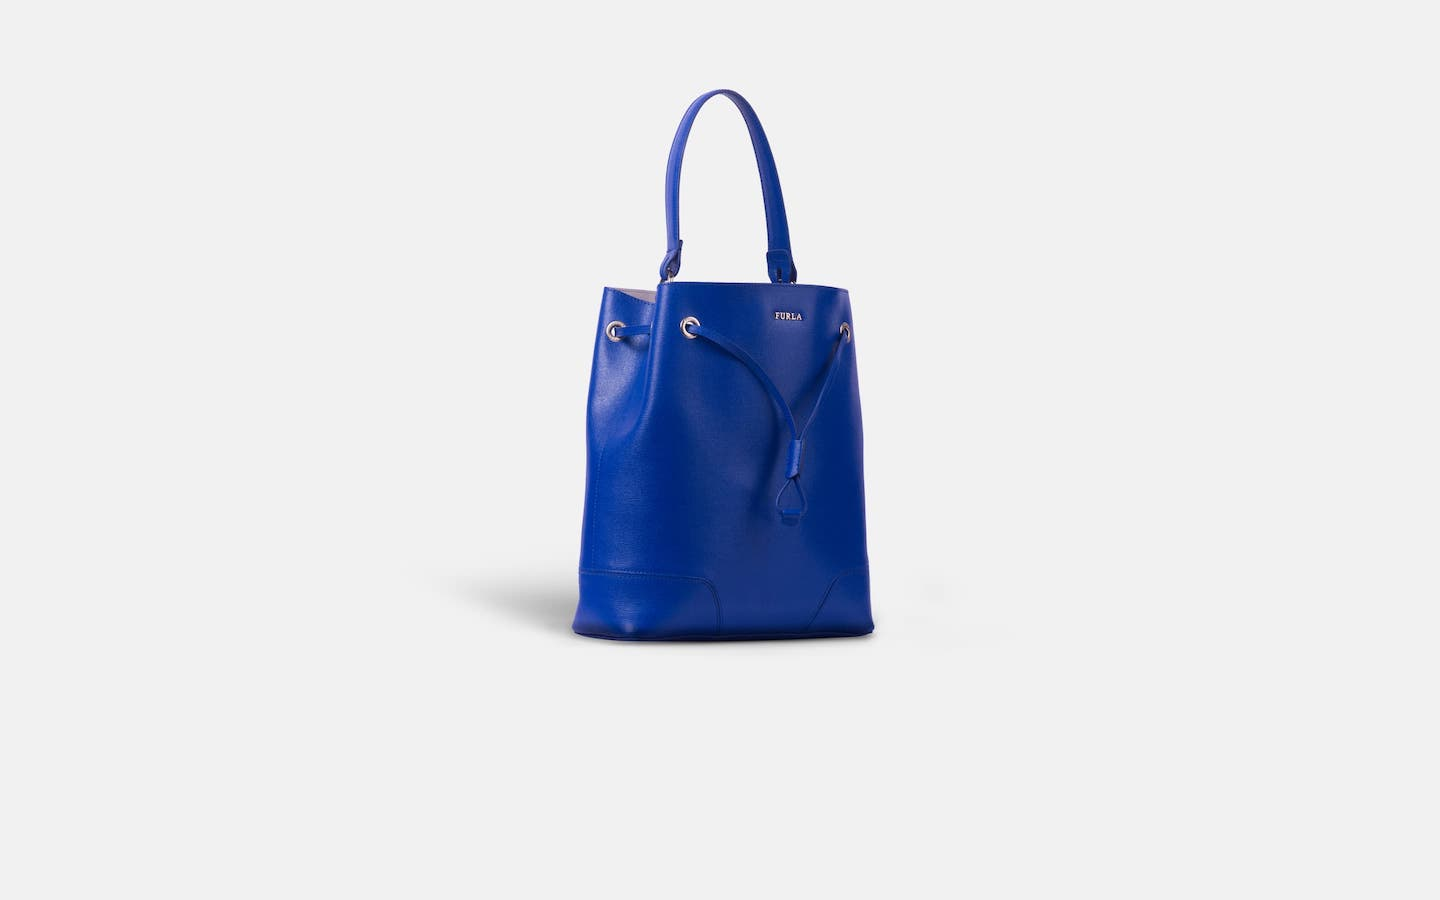 furla-stacy-blue-angled-min-min